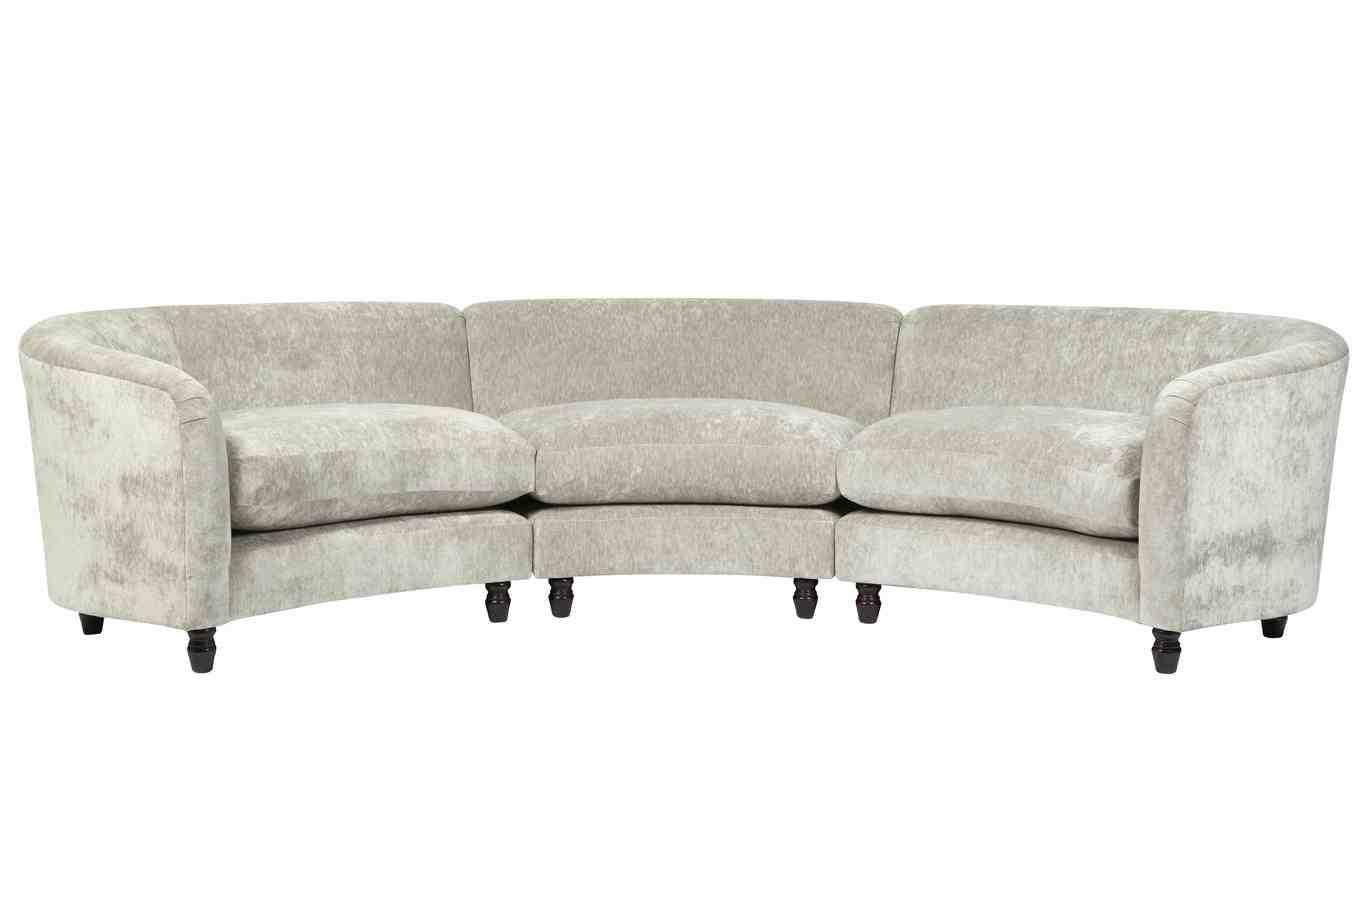 Baxton Studio Leather Couch